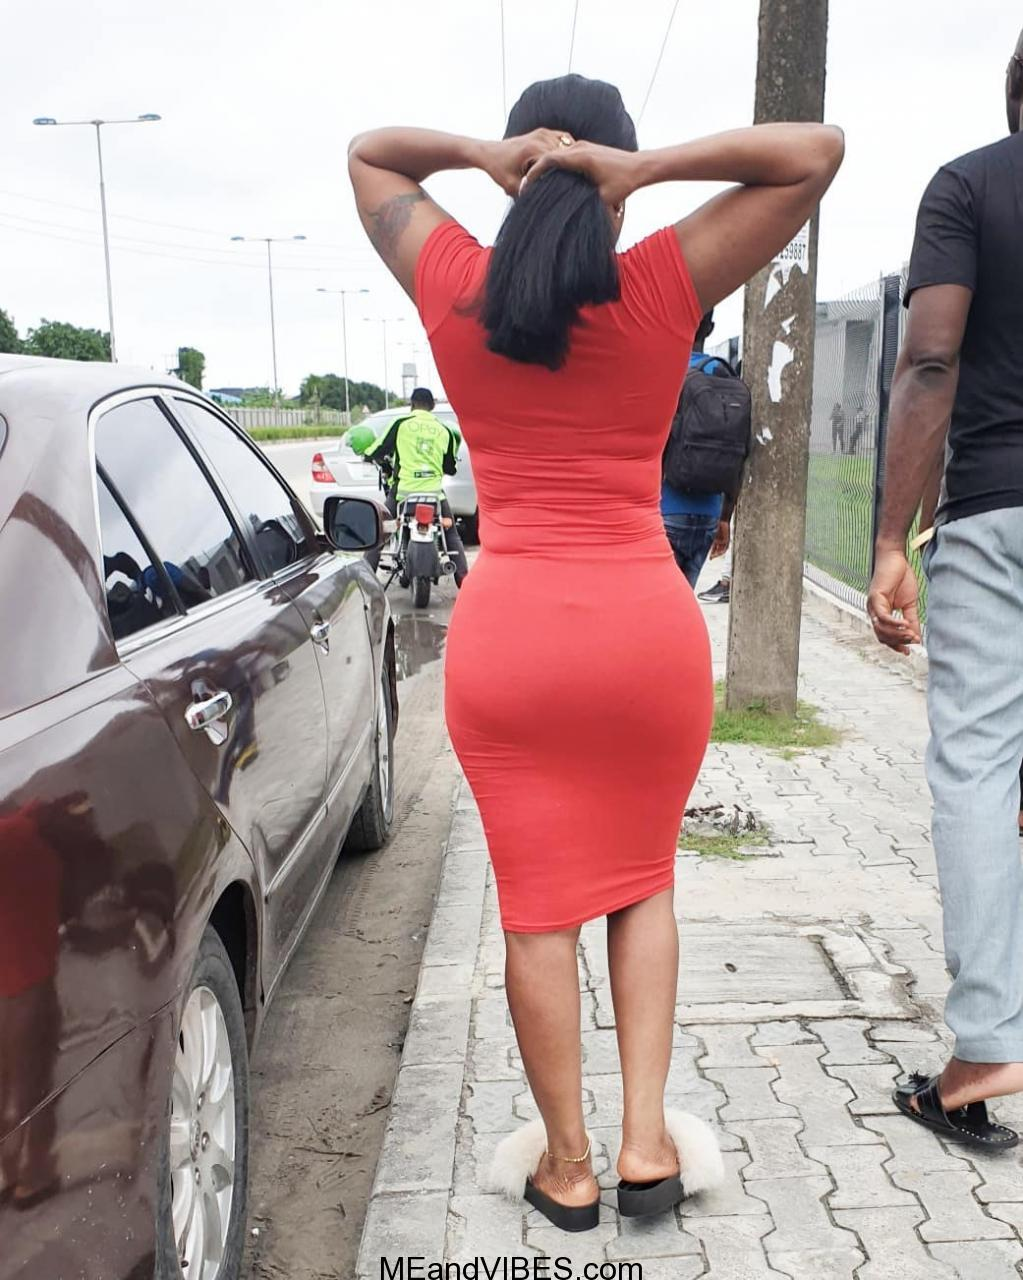 Actress, Iyabo Ojo shows off her hot shape in figure-hugging dress (Photos)